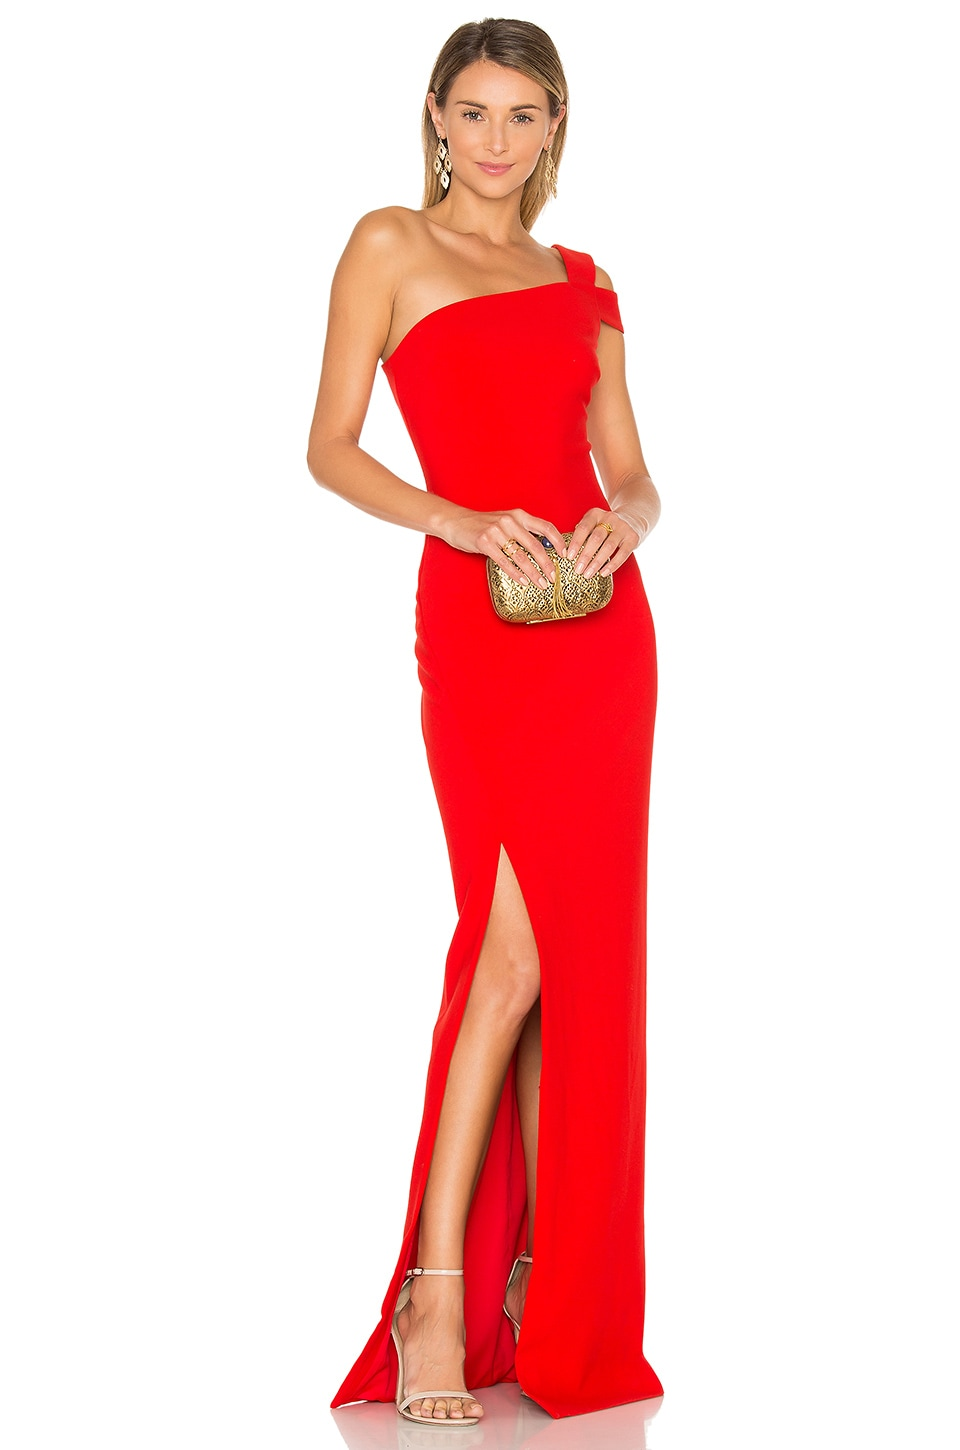 LIKELY Maxson Gown in Scarlet